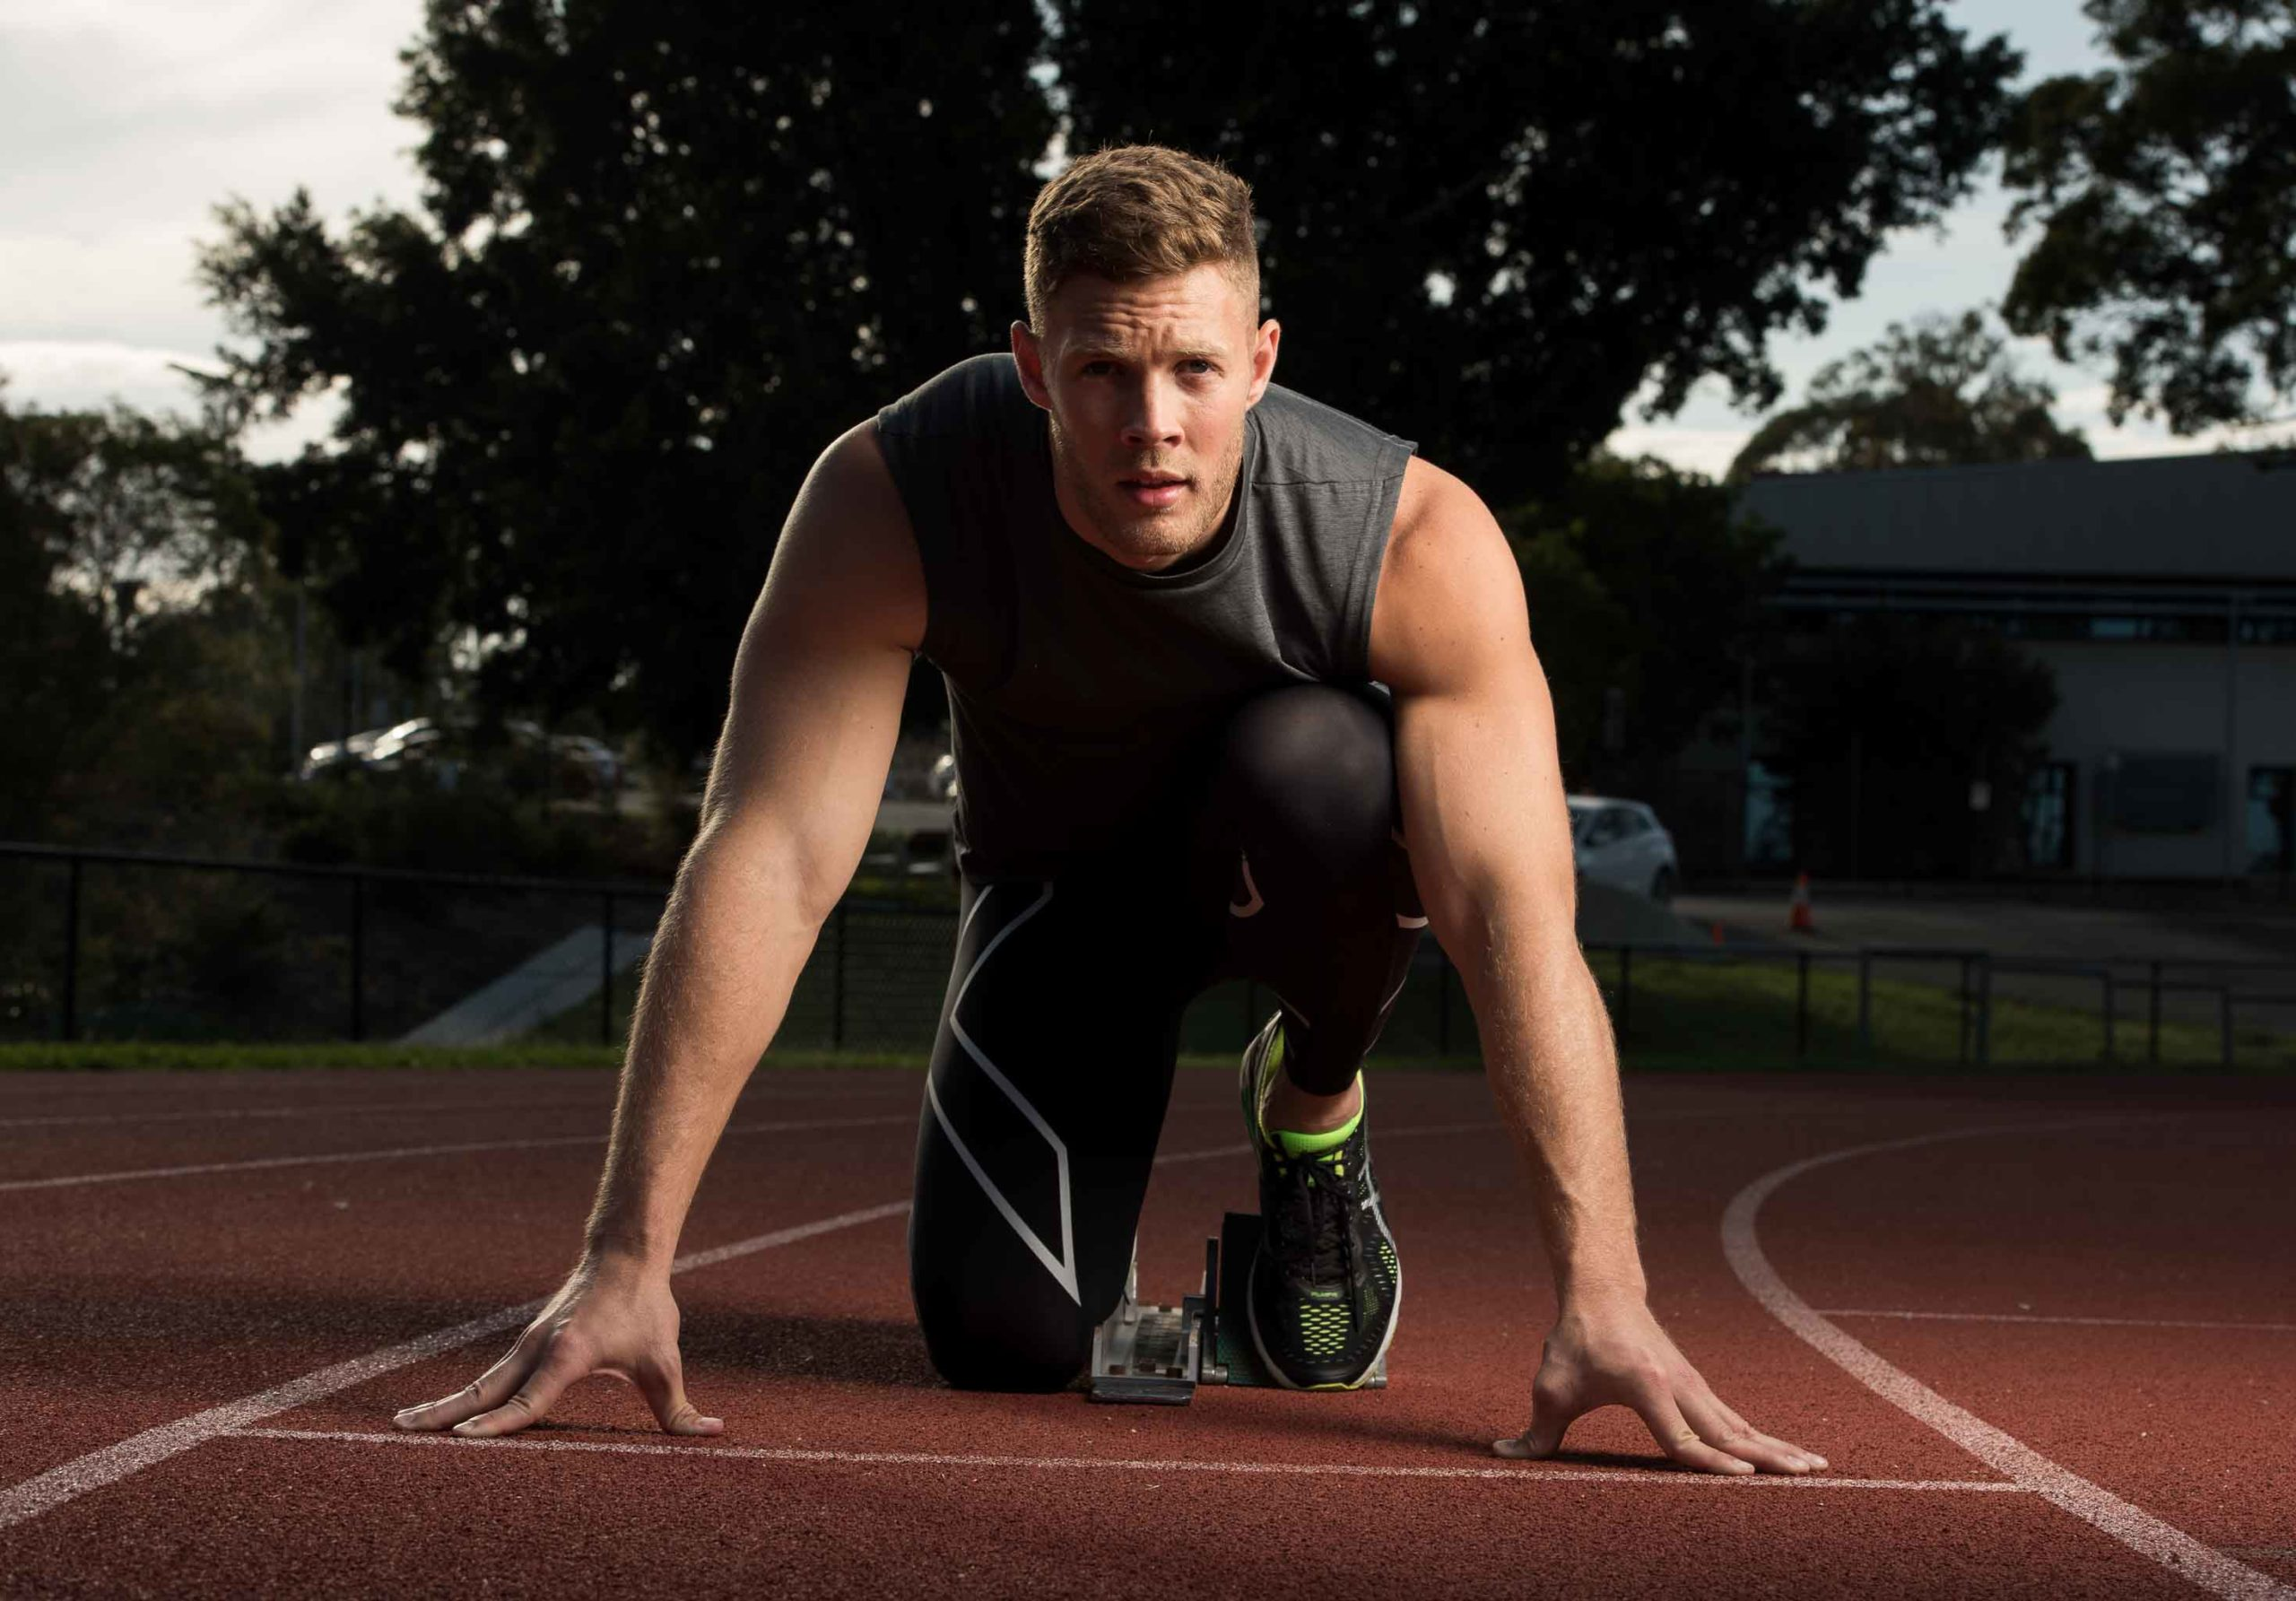 Josh in starting blocks